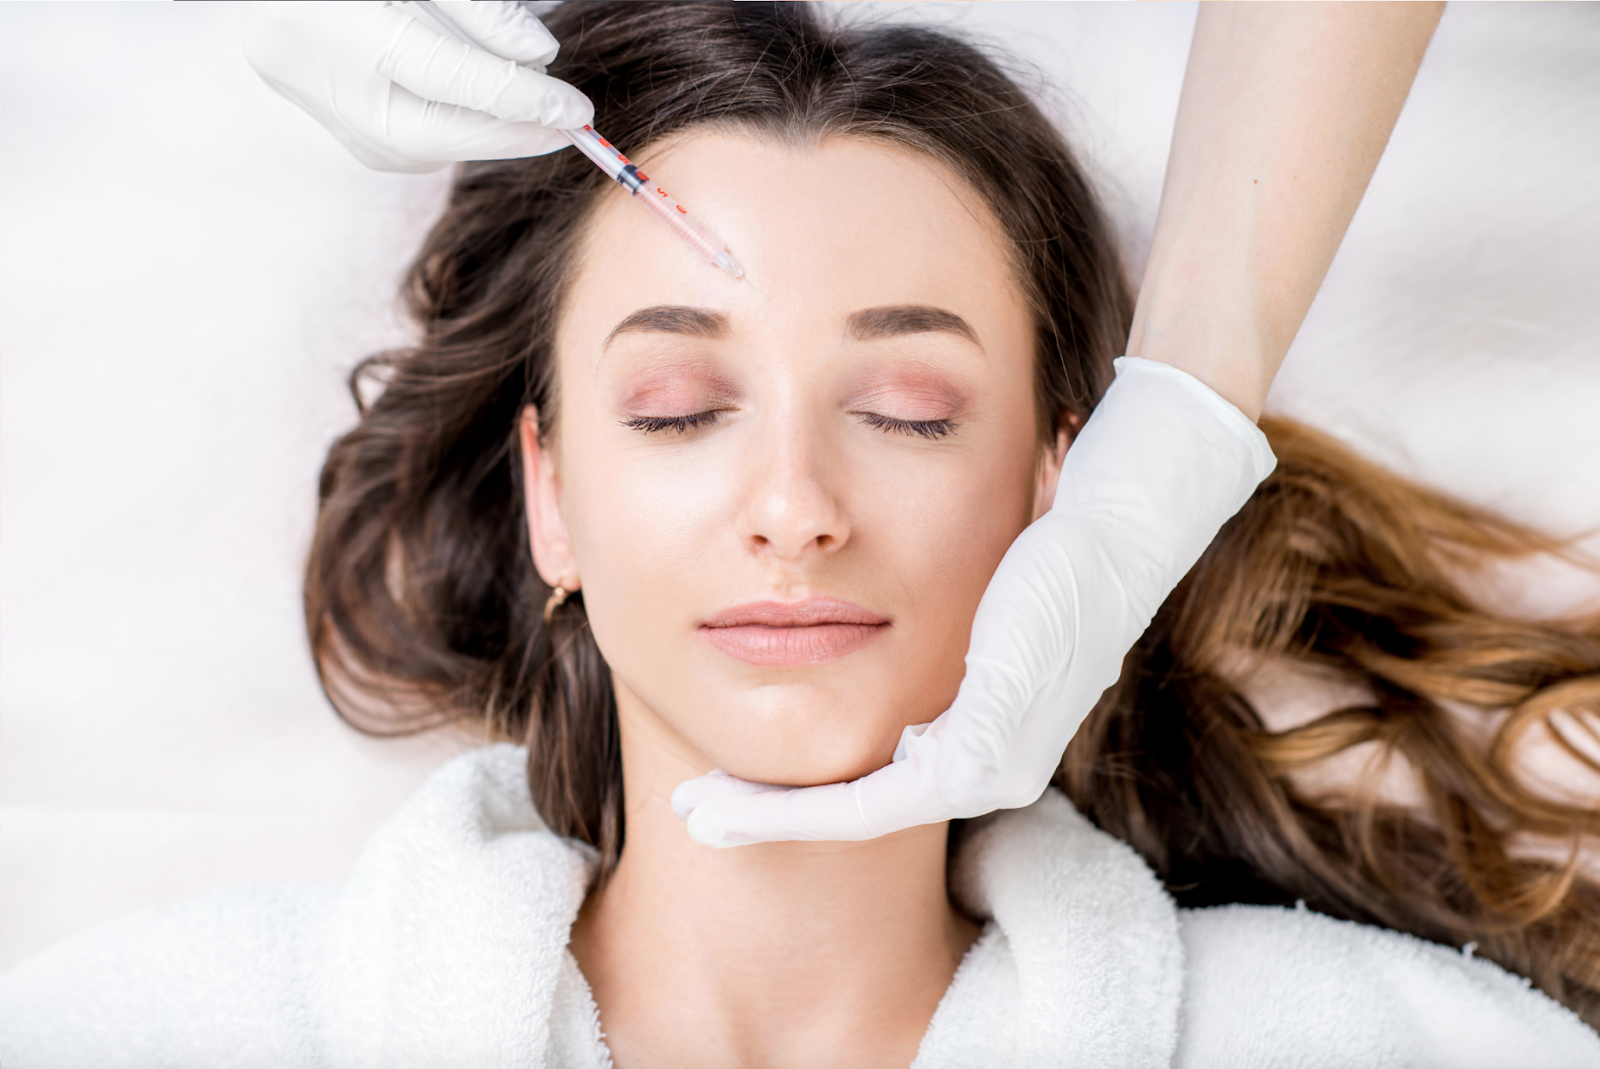 Woman getting botox treatment in forehead